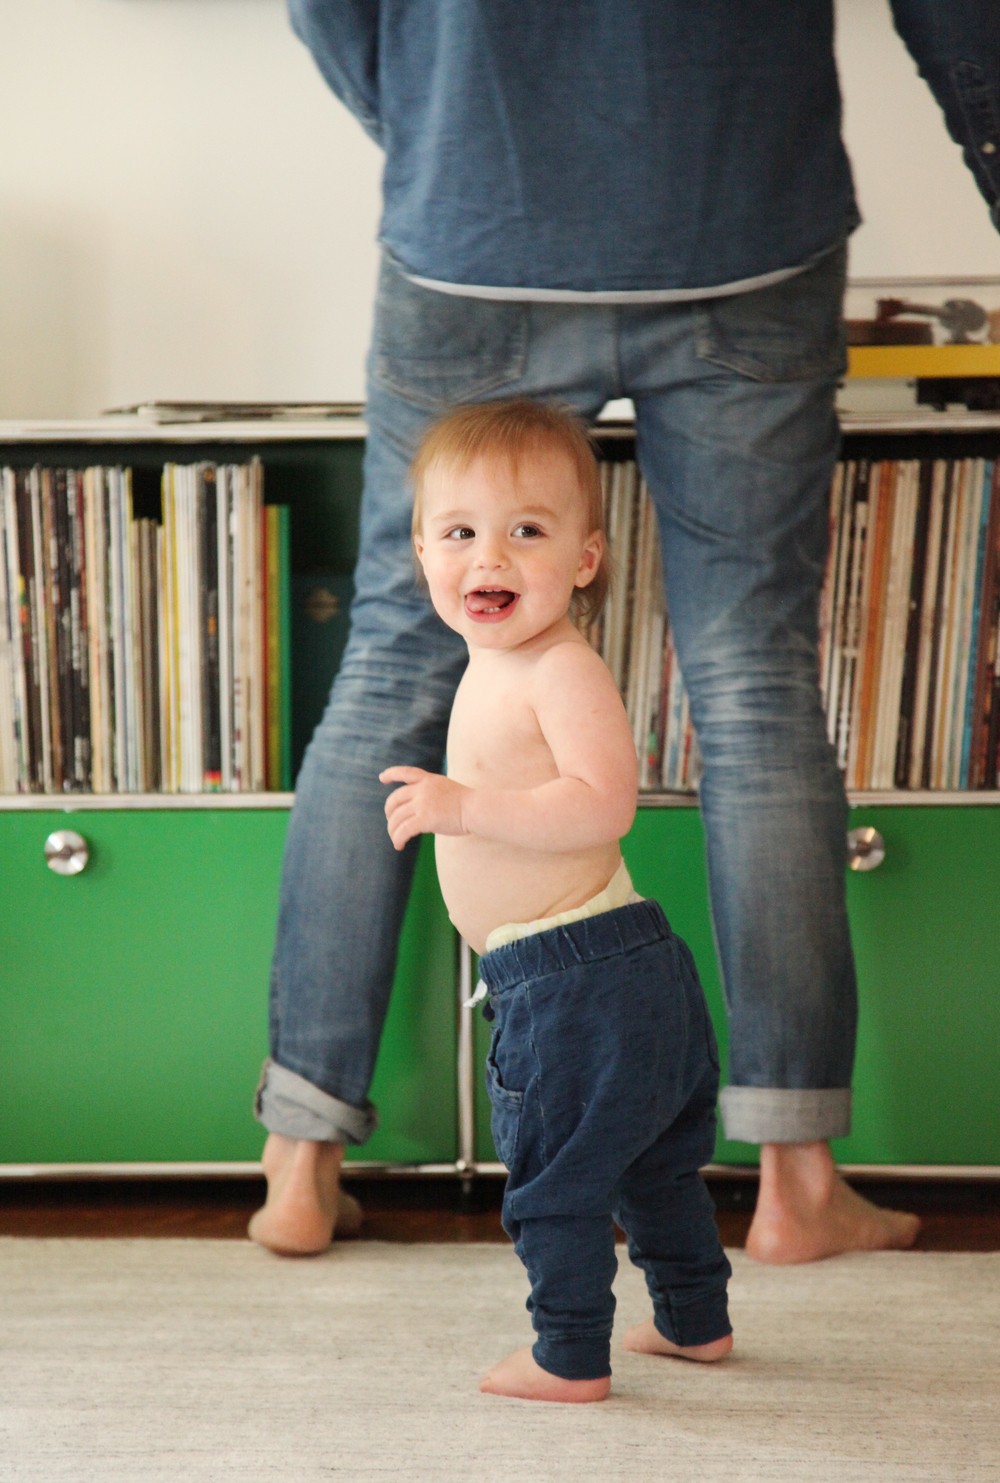 Tate's got jams in his bones. Dad's a vinyl guru with a serious collection.